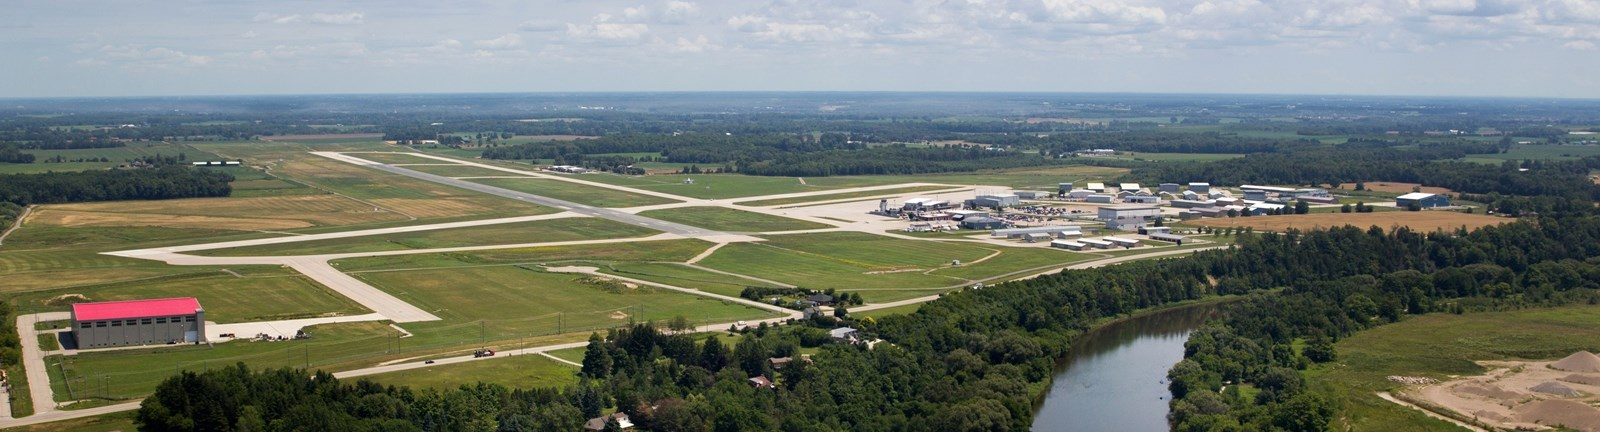 Address and Directions - Region of Waterloo International Airport